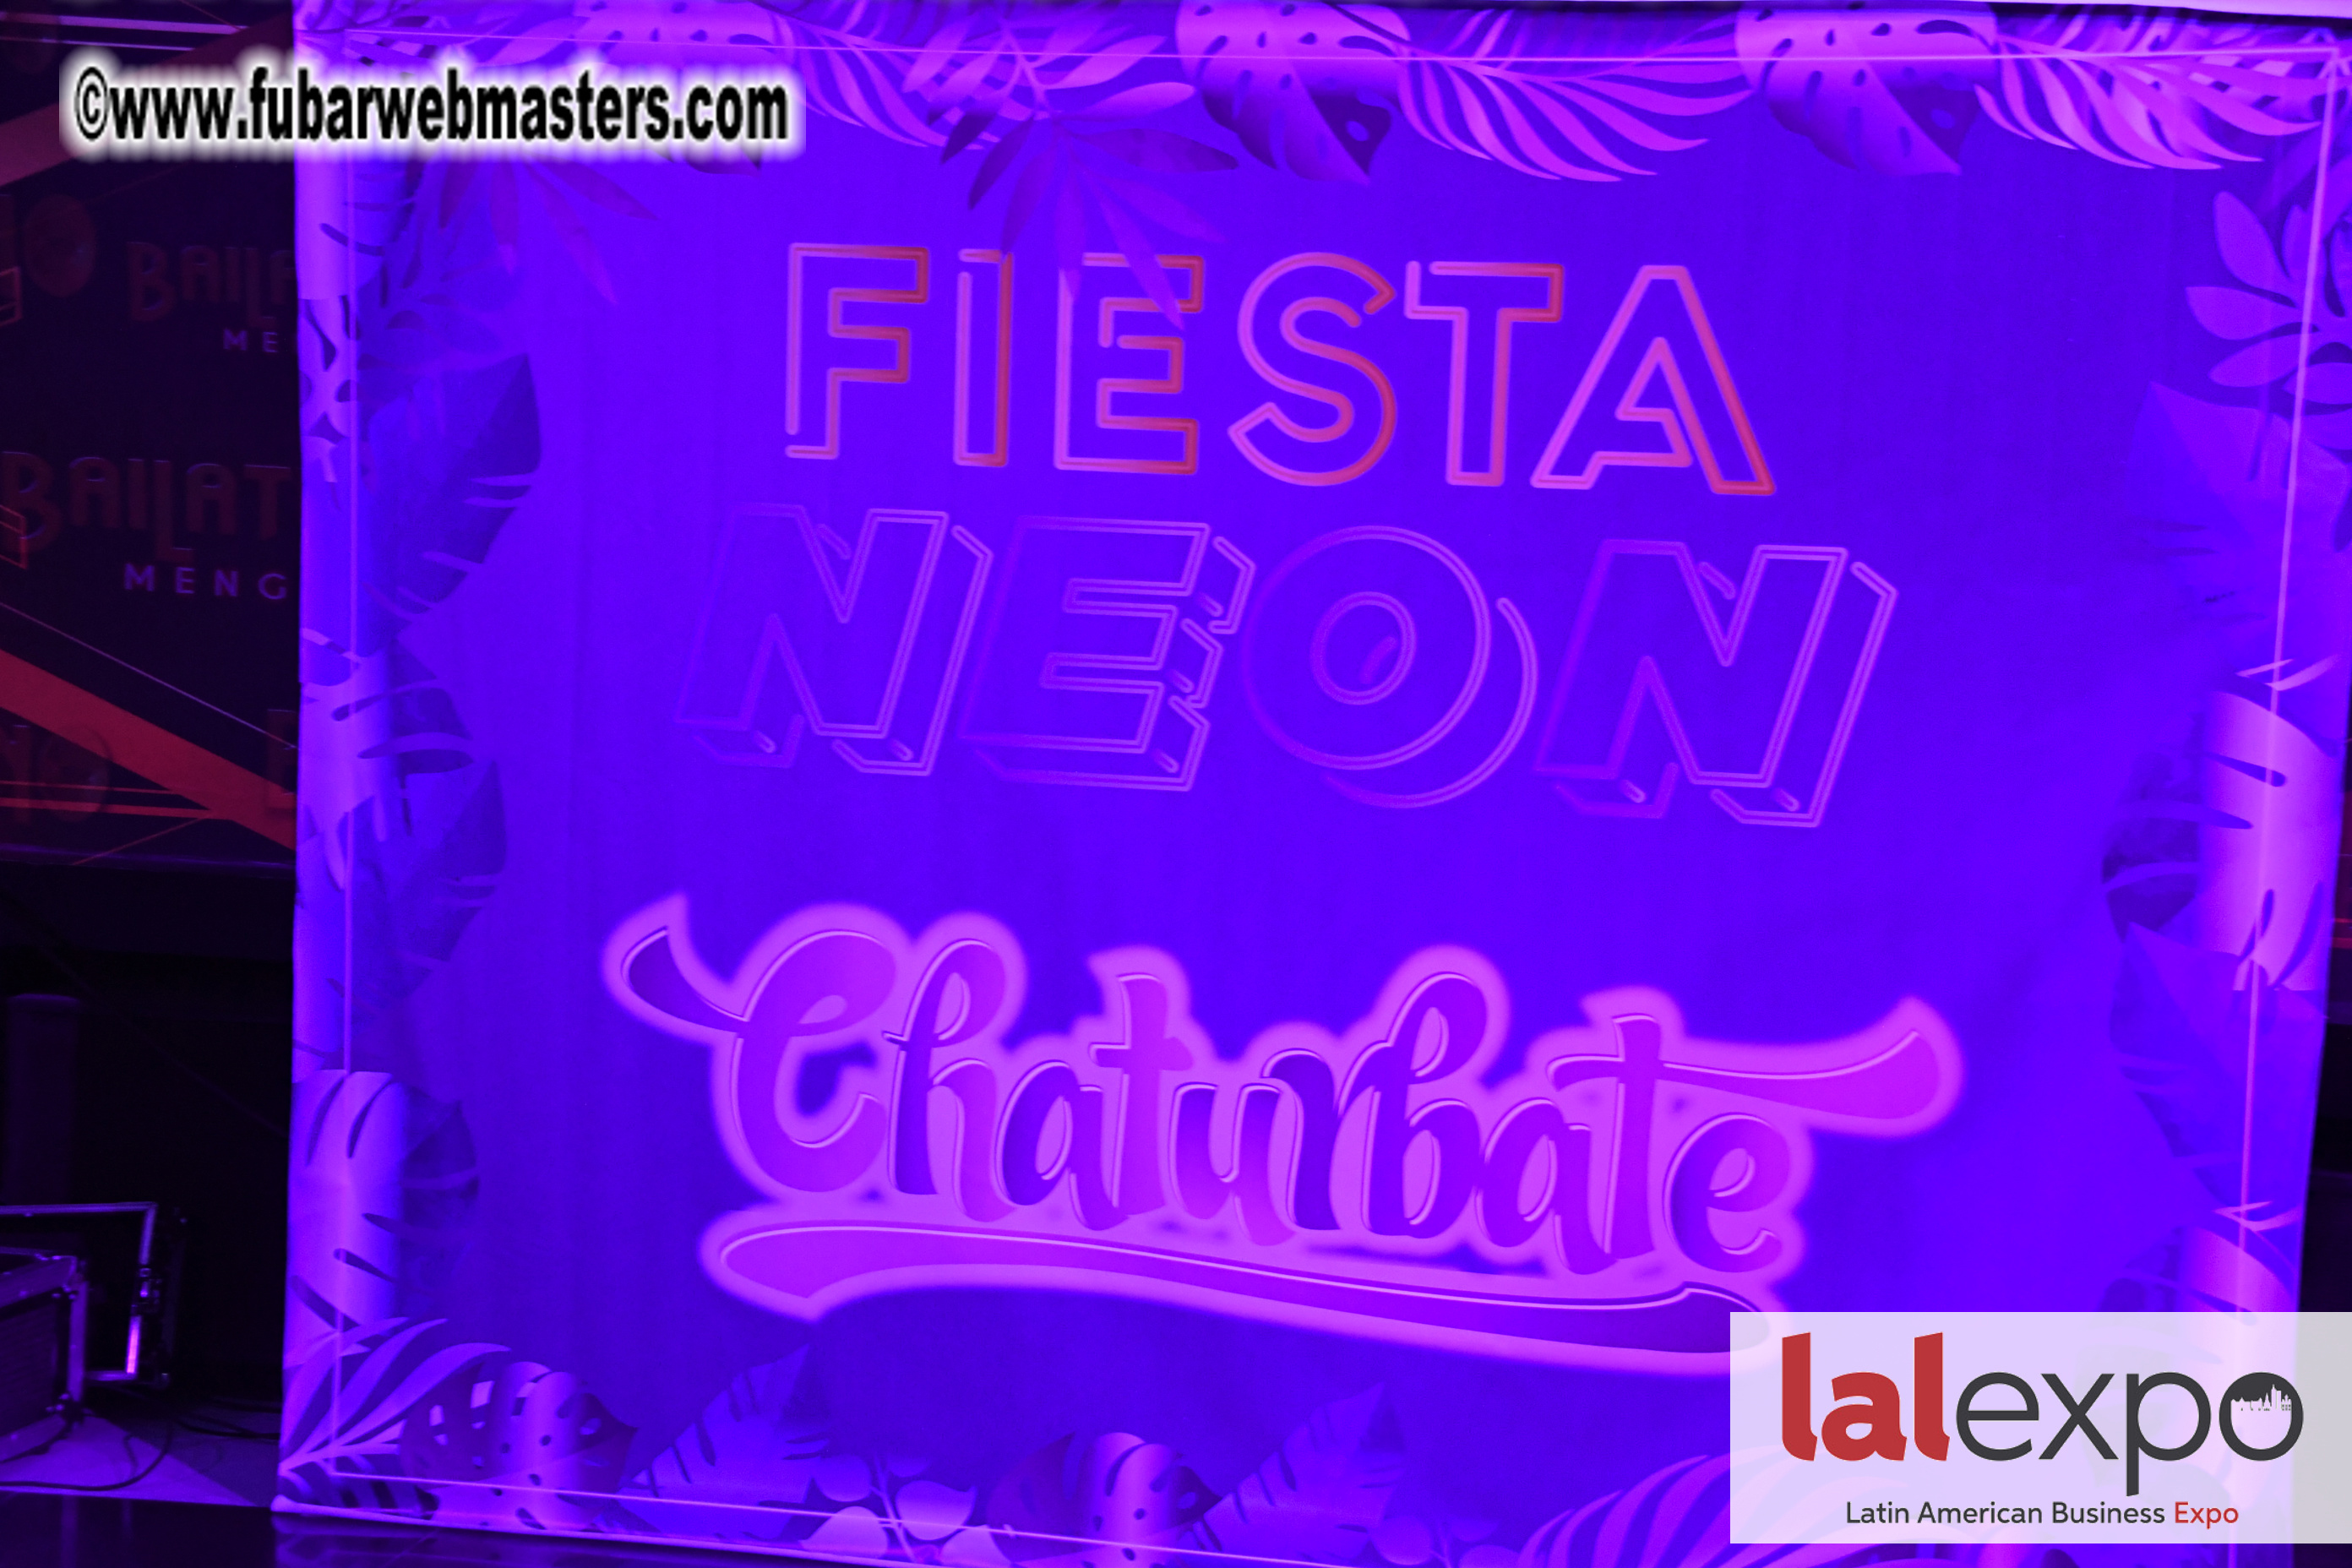 Chaturbate Neon Party